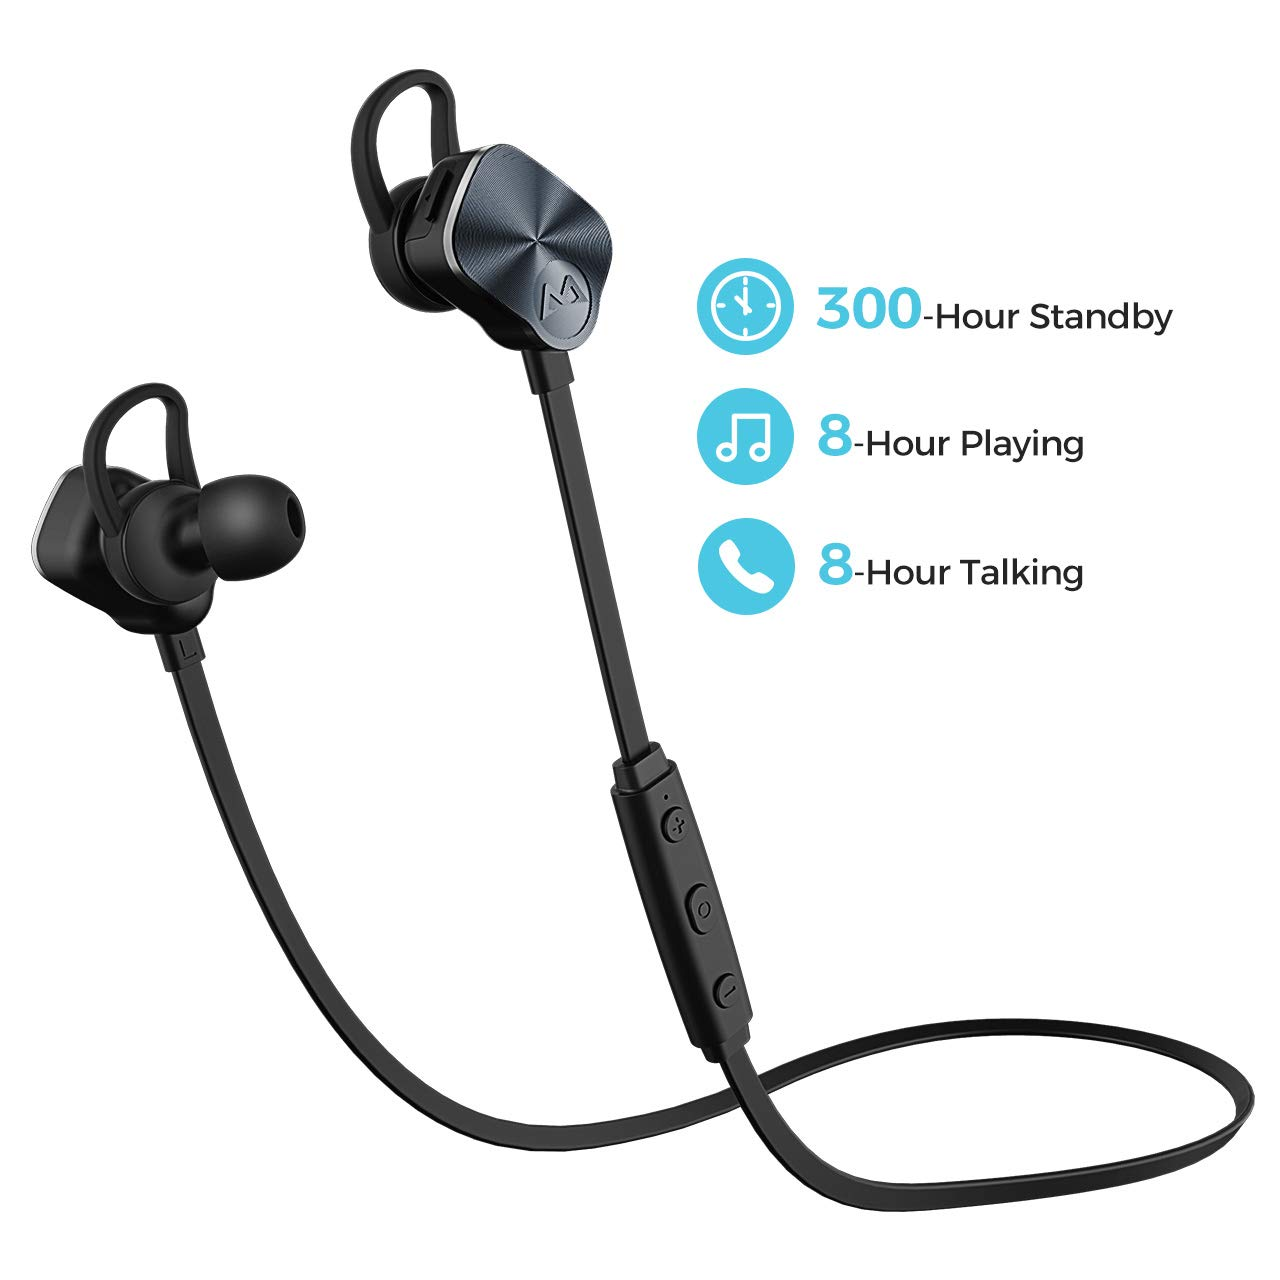 519f03ce9da Wireless Headphones, Mpow Bluetooth 4.1 Earphones Headsets IPX7 Lightweight Sports  Earbuds Running Headphones with Mic, Stereo Sound for WorkOut Gym ...